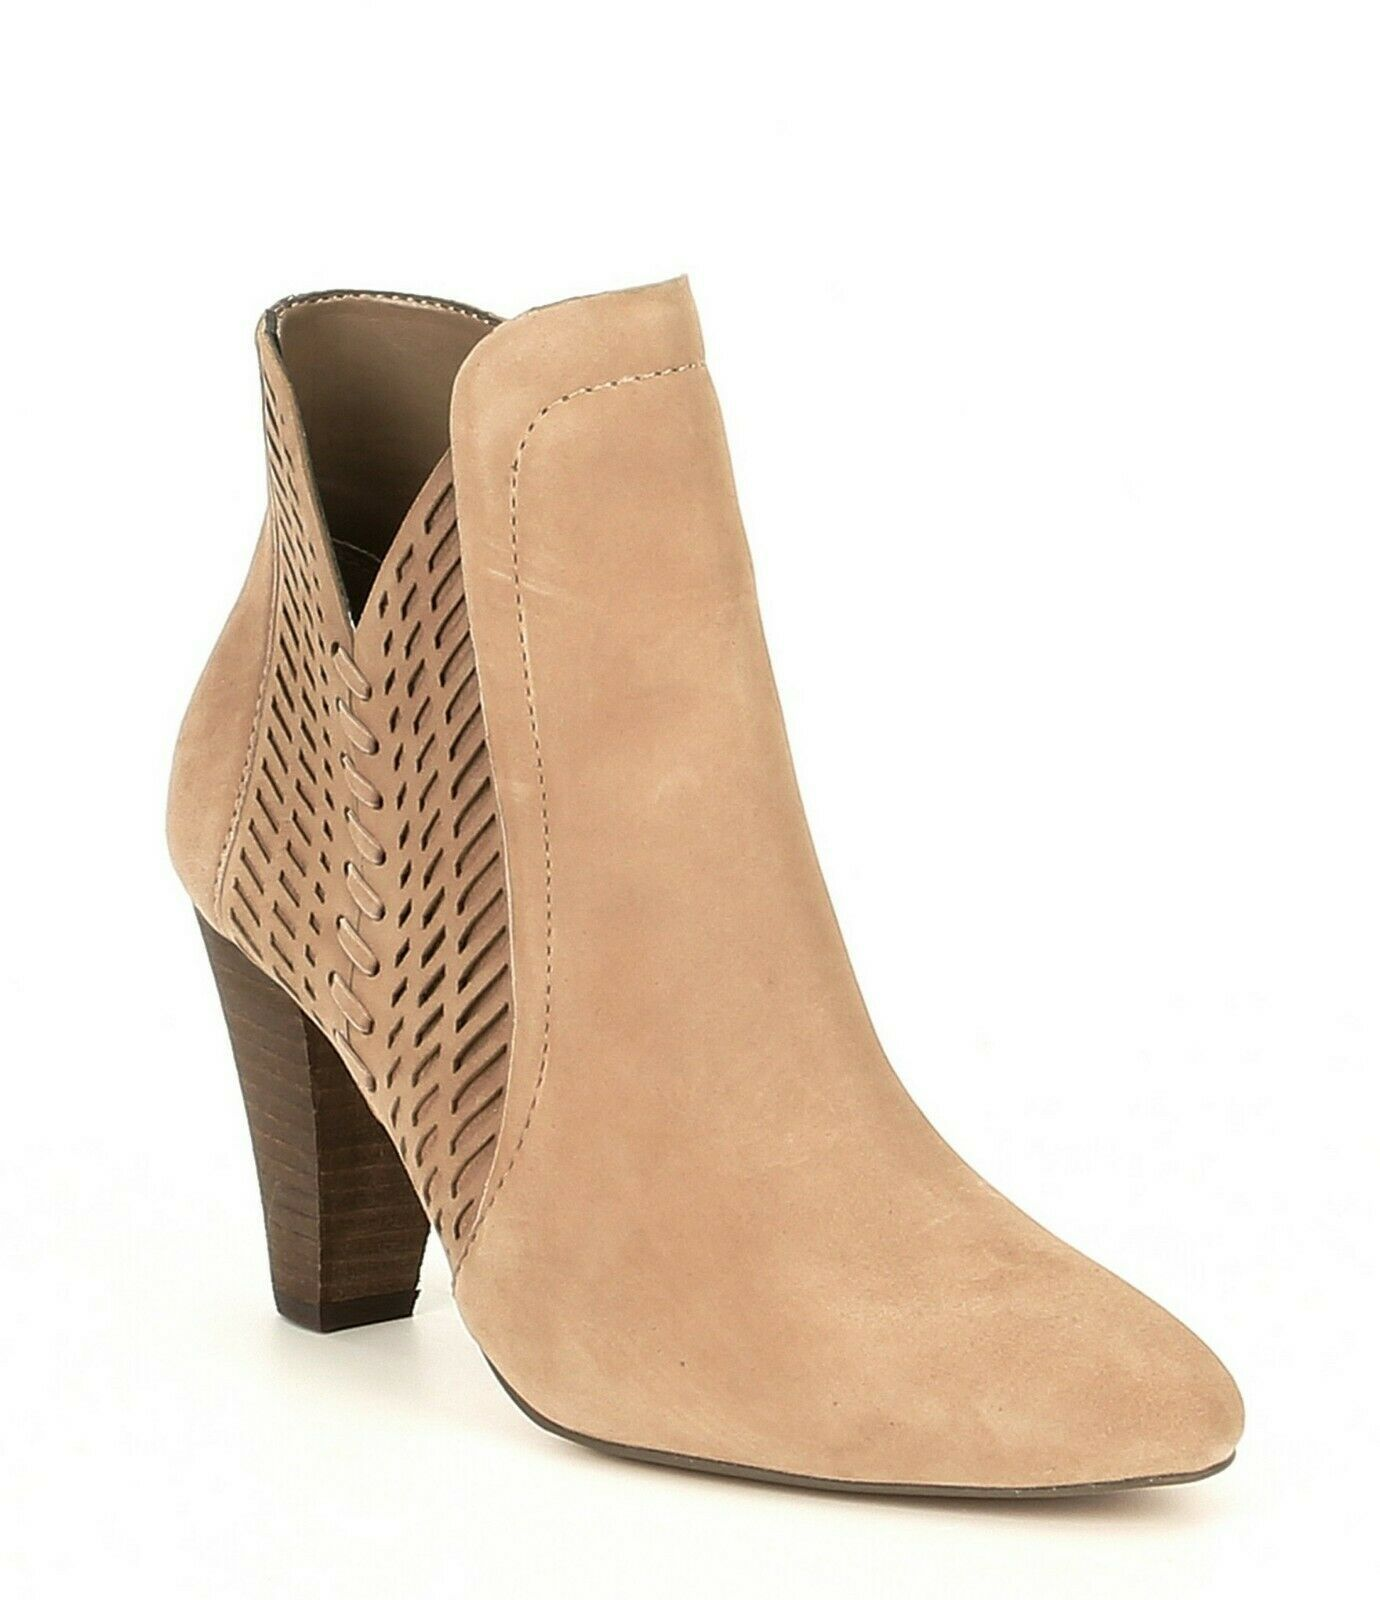 Women Vince Camuto Rotiena Suede Laser Cut Booties, Multi Sizes Wild Mushroom VC image 2